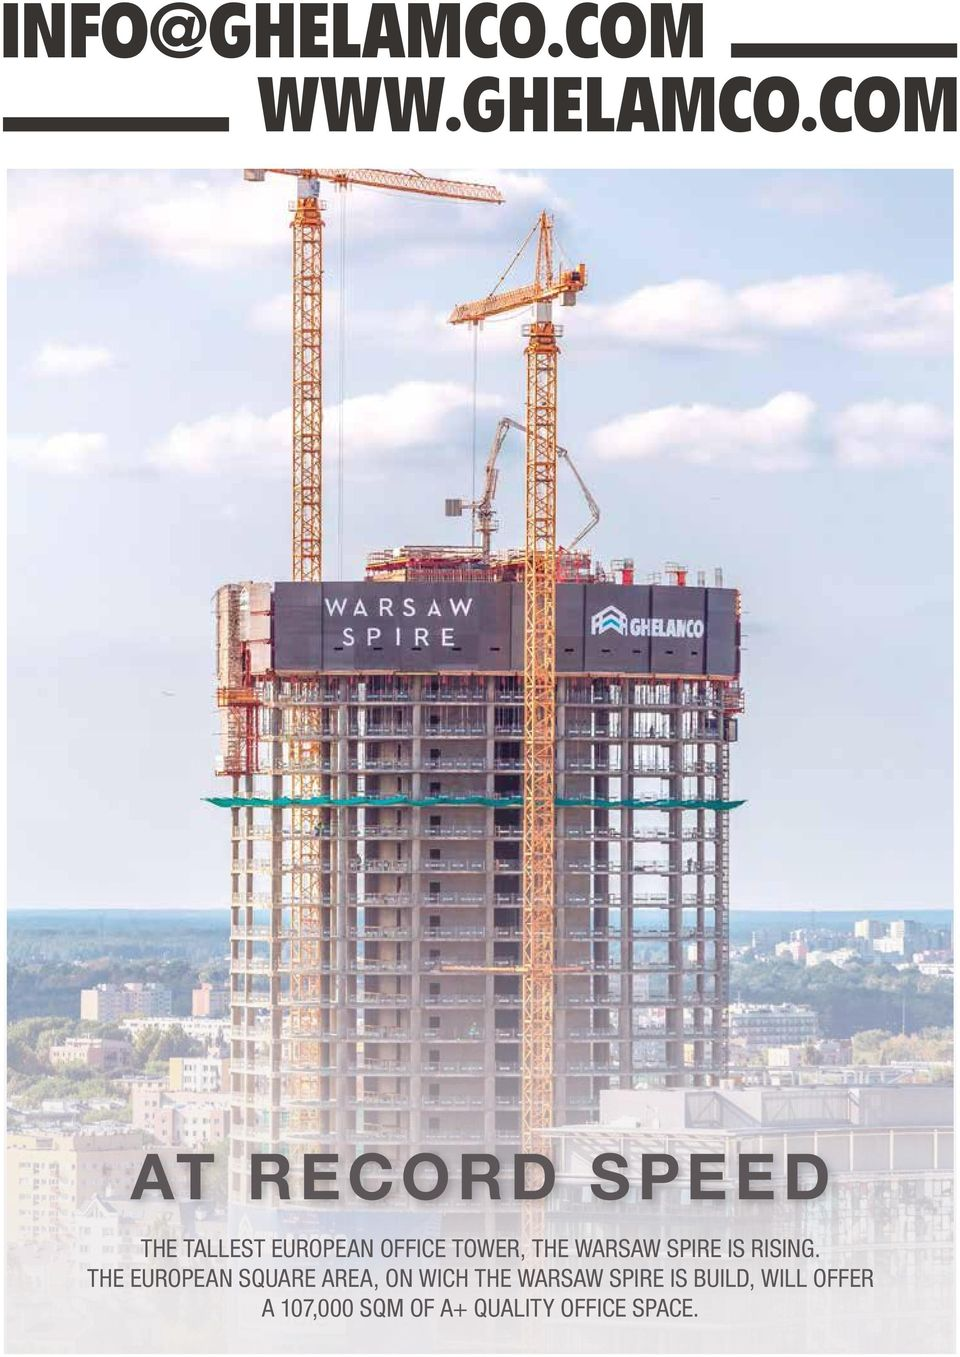 COM AT RECORD SPEED THE TALLEST EUROPEAN OFFICE TOWER,